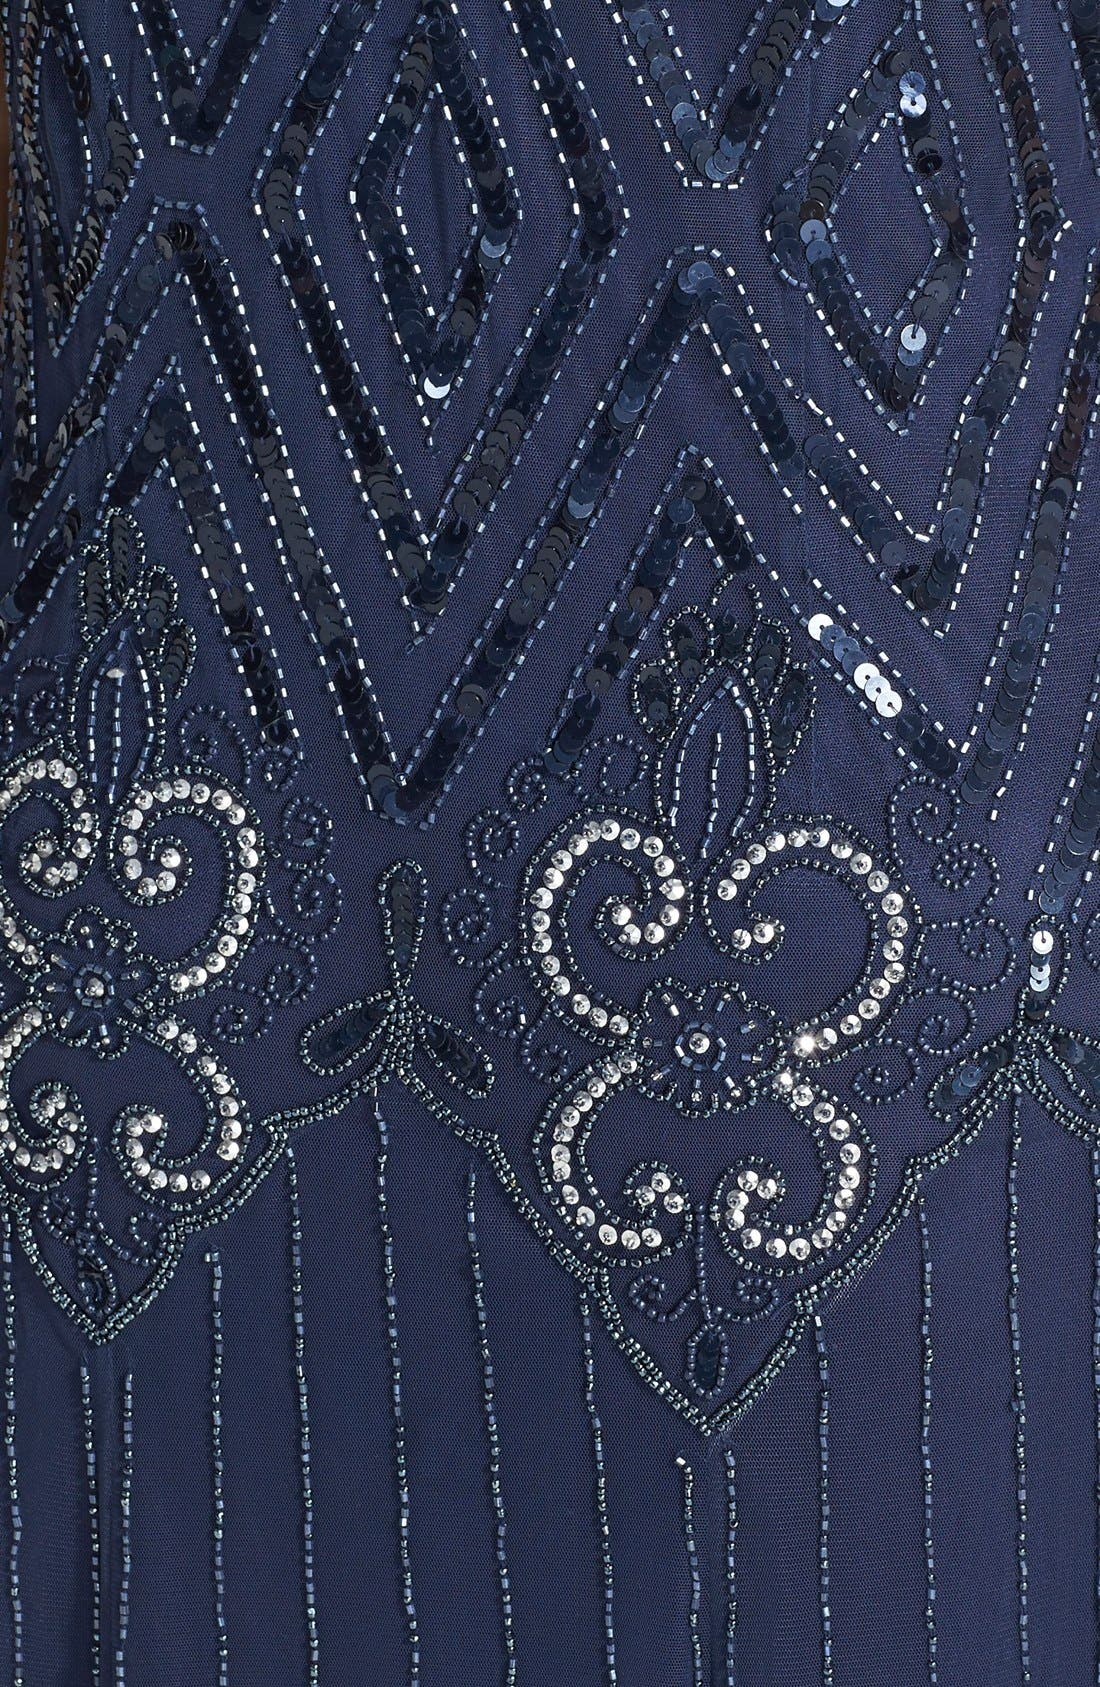 Beaded Chiffon Gown,                             Alternate thumbnail 3, color,                             Navy